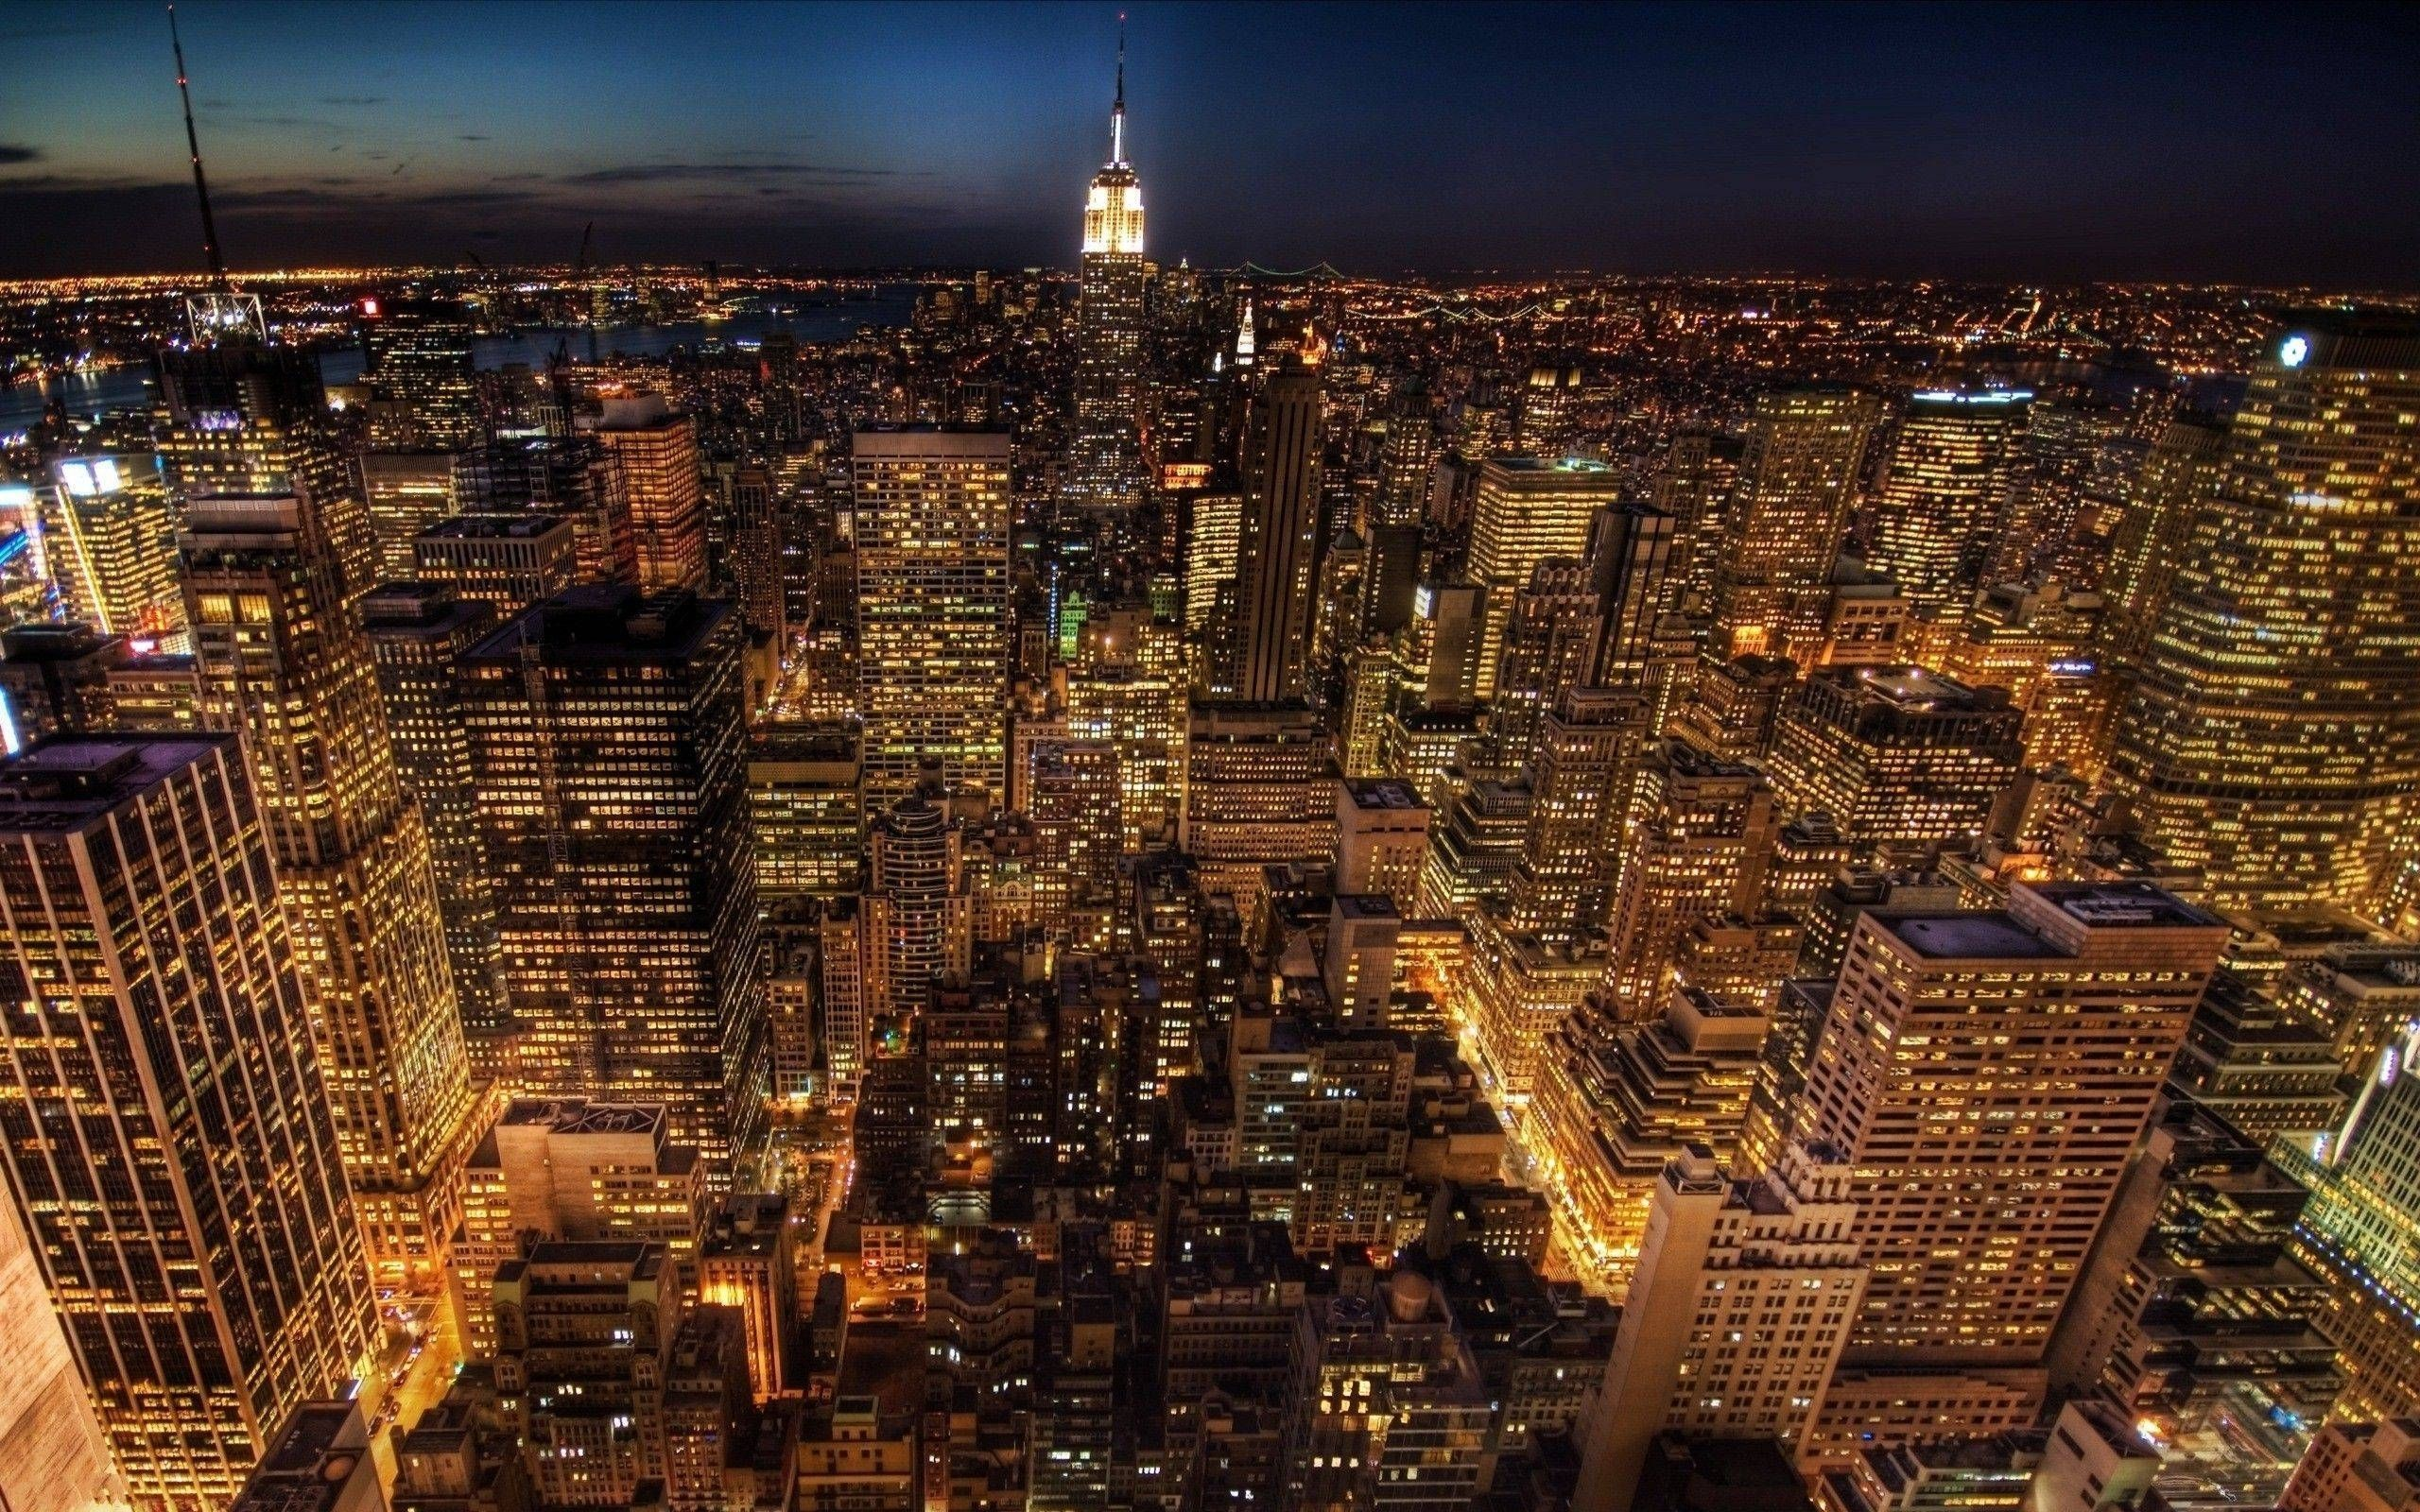 10 Best New York City Night Hd Wallpaper FULL HD 1080p For